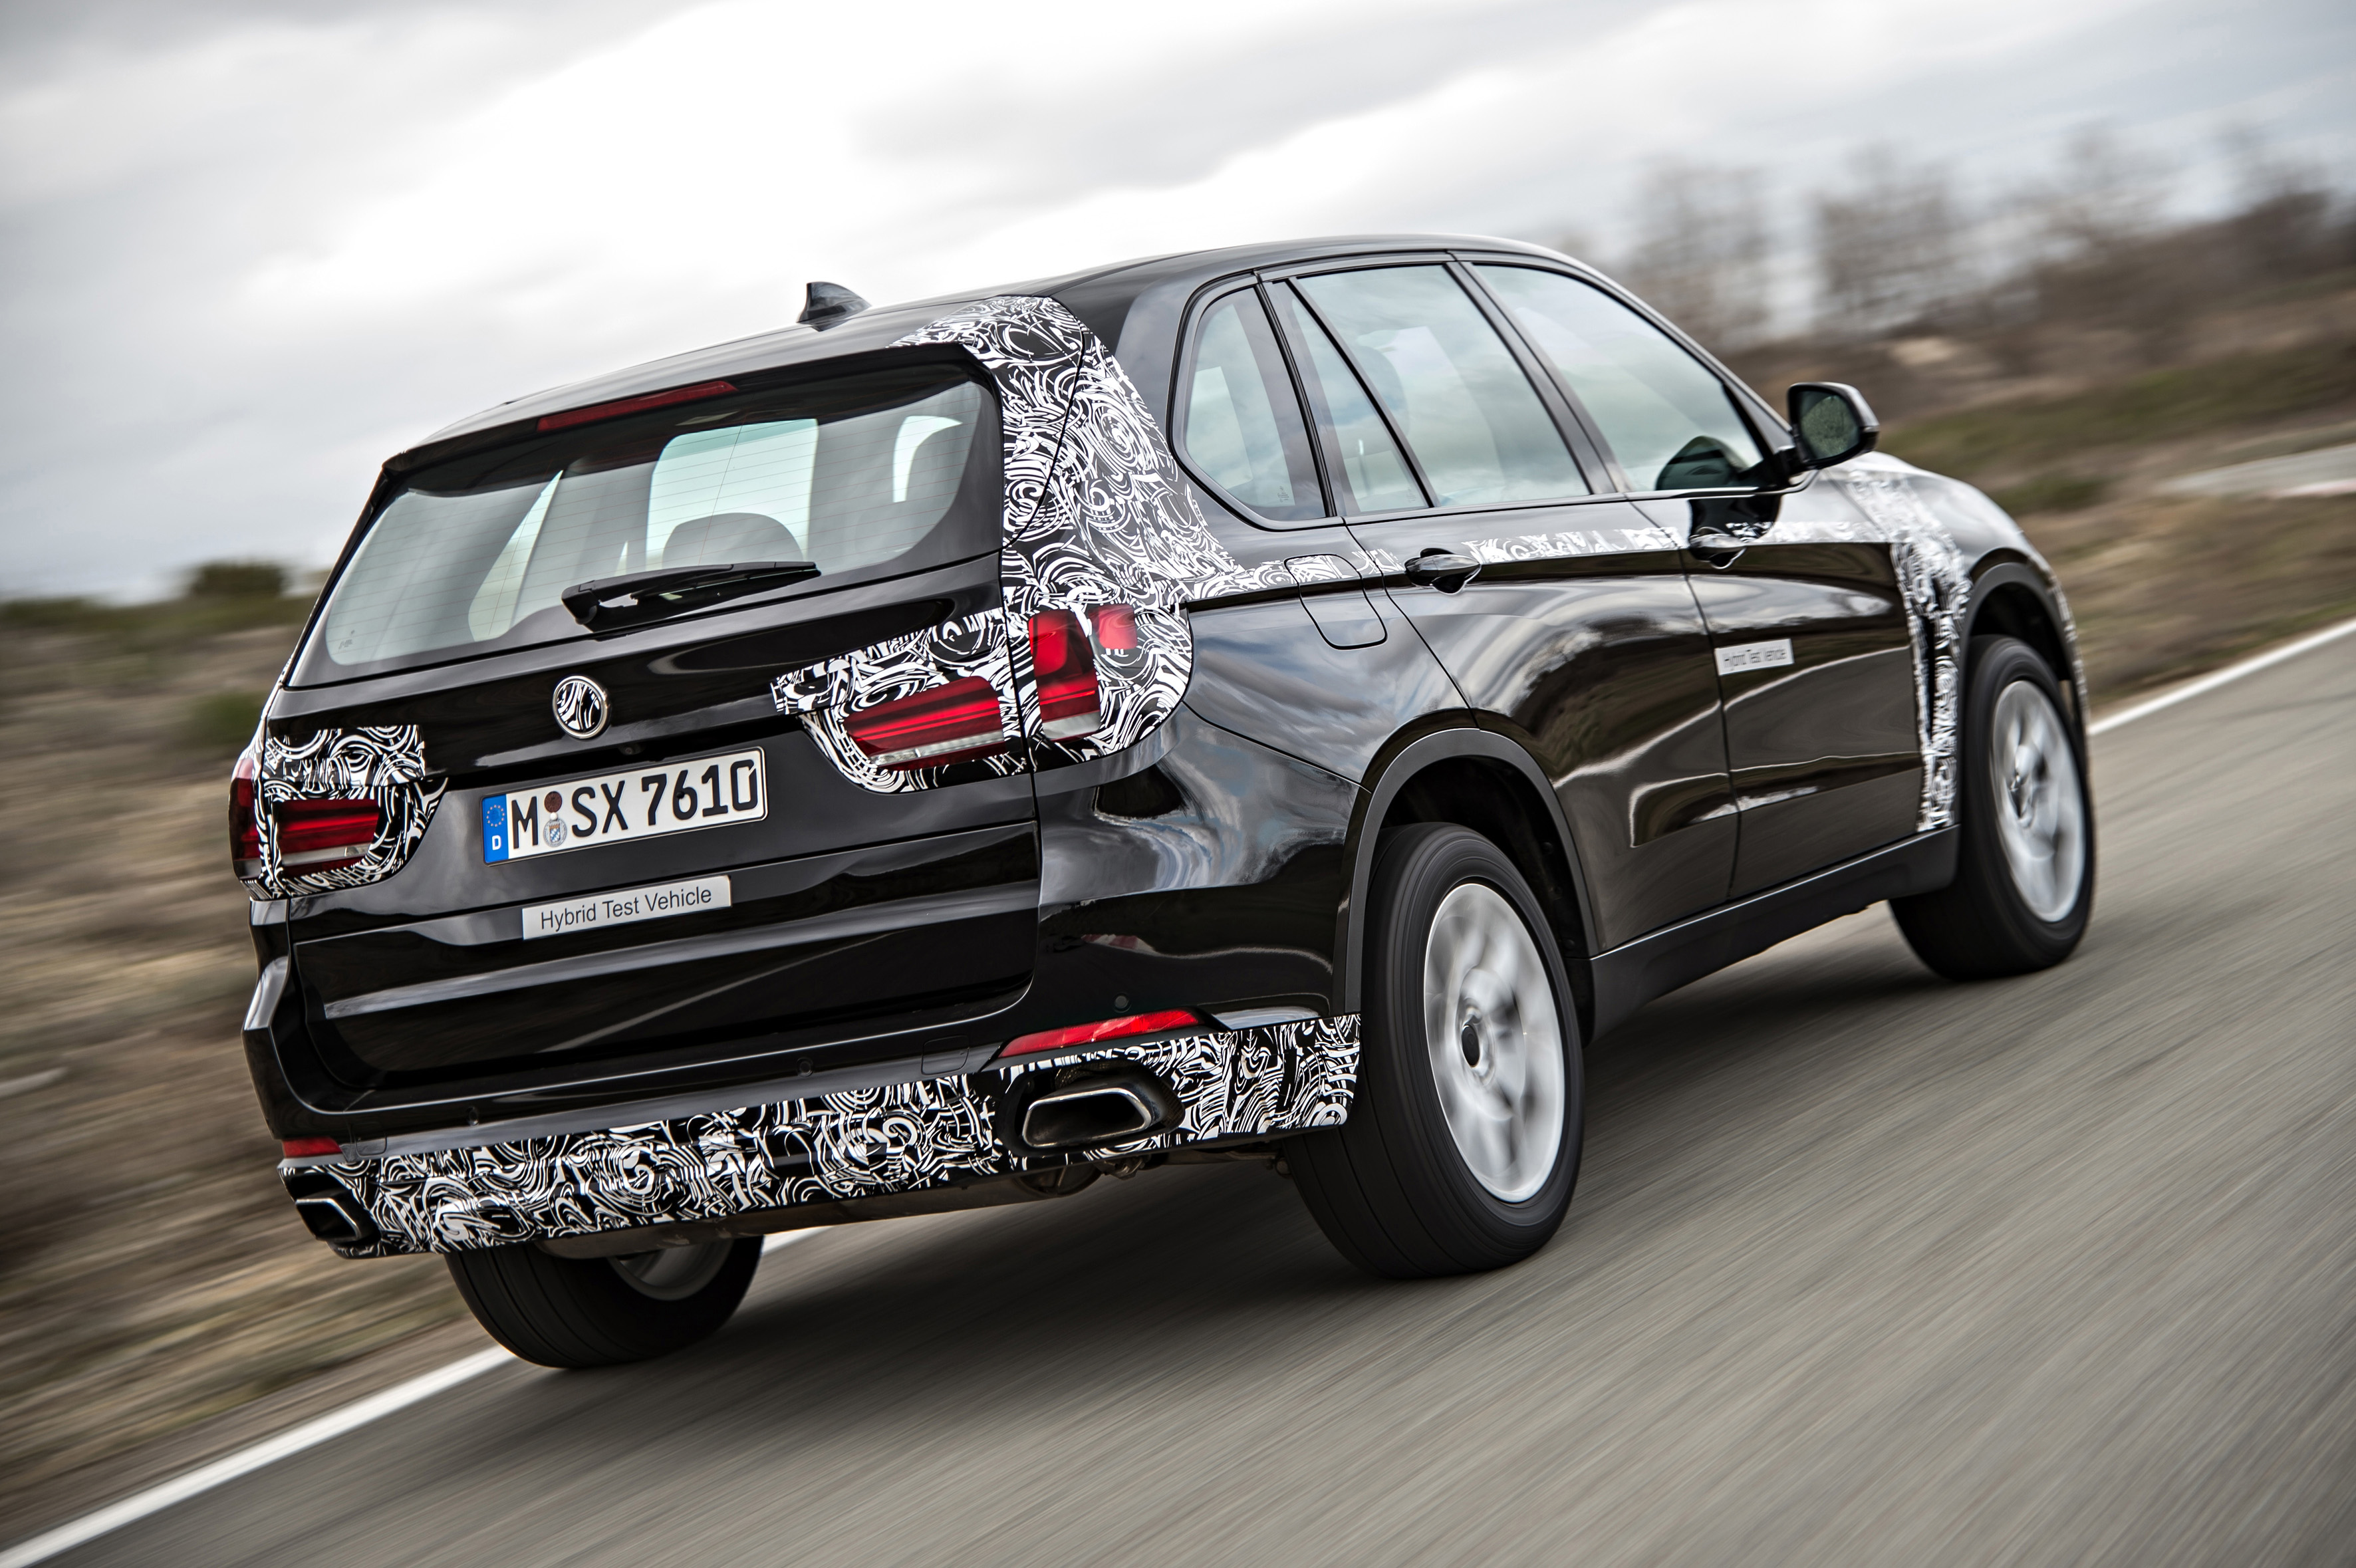 BMW X5 eDrive – official 'spyshots' from media event Paul ...